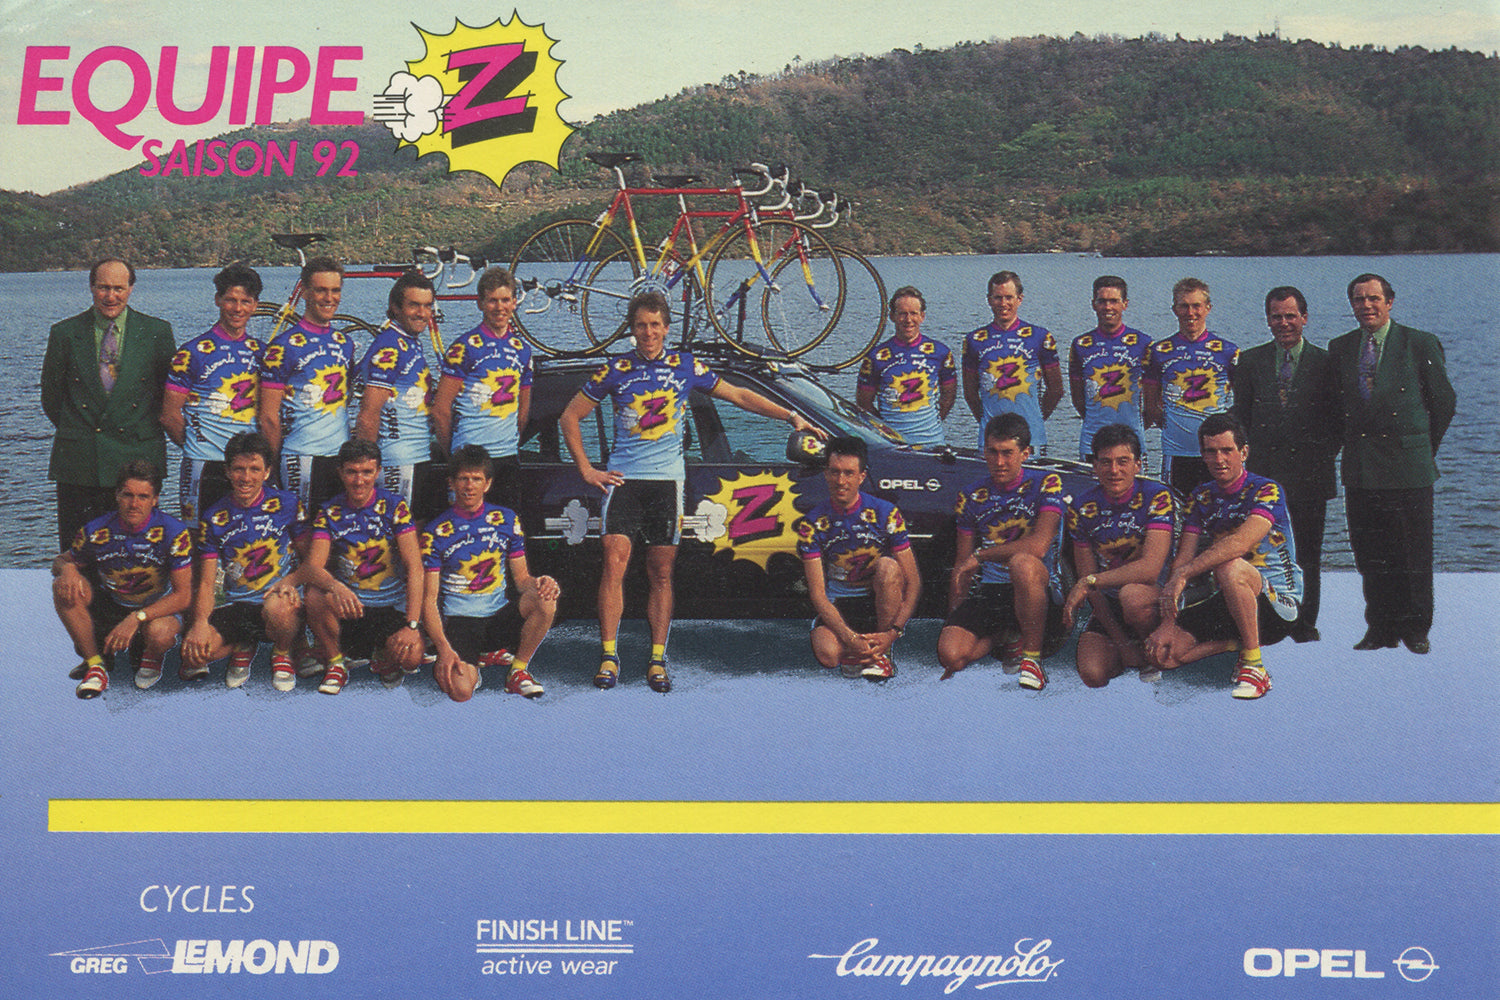 Equipe Vêtements Z-Peugeot Cycling Team postcard from 1992 with Greg Lemond in the centre.